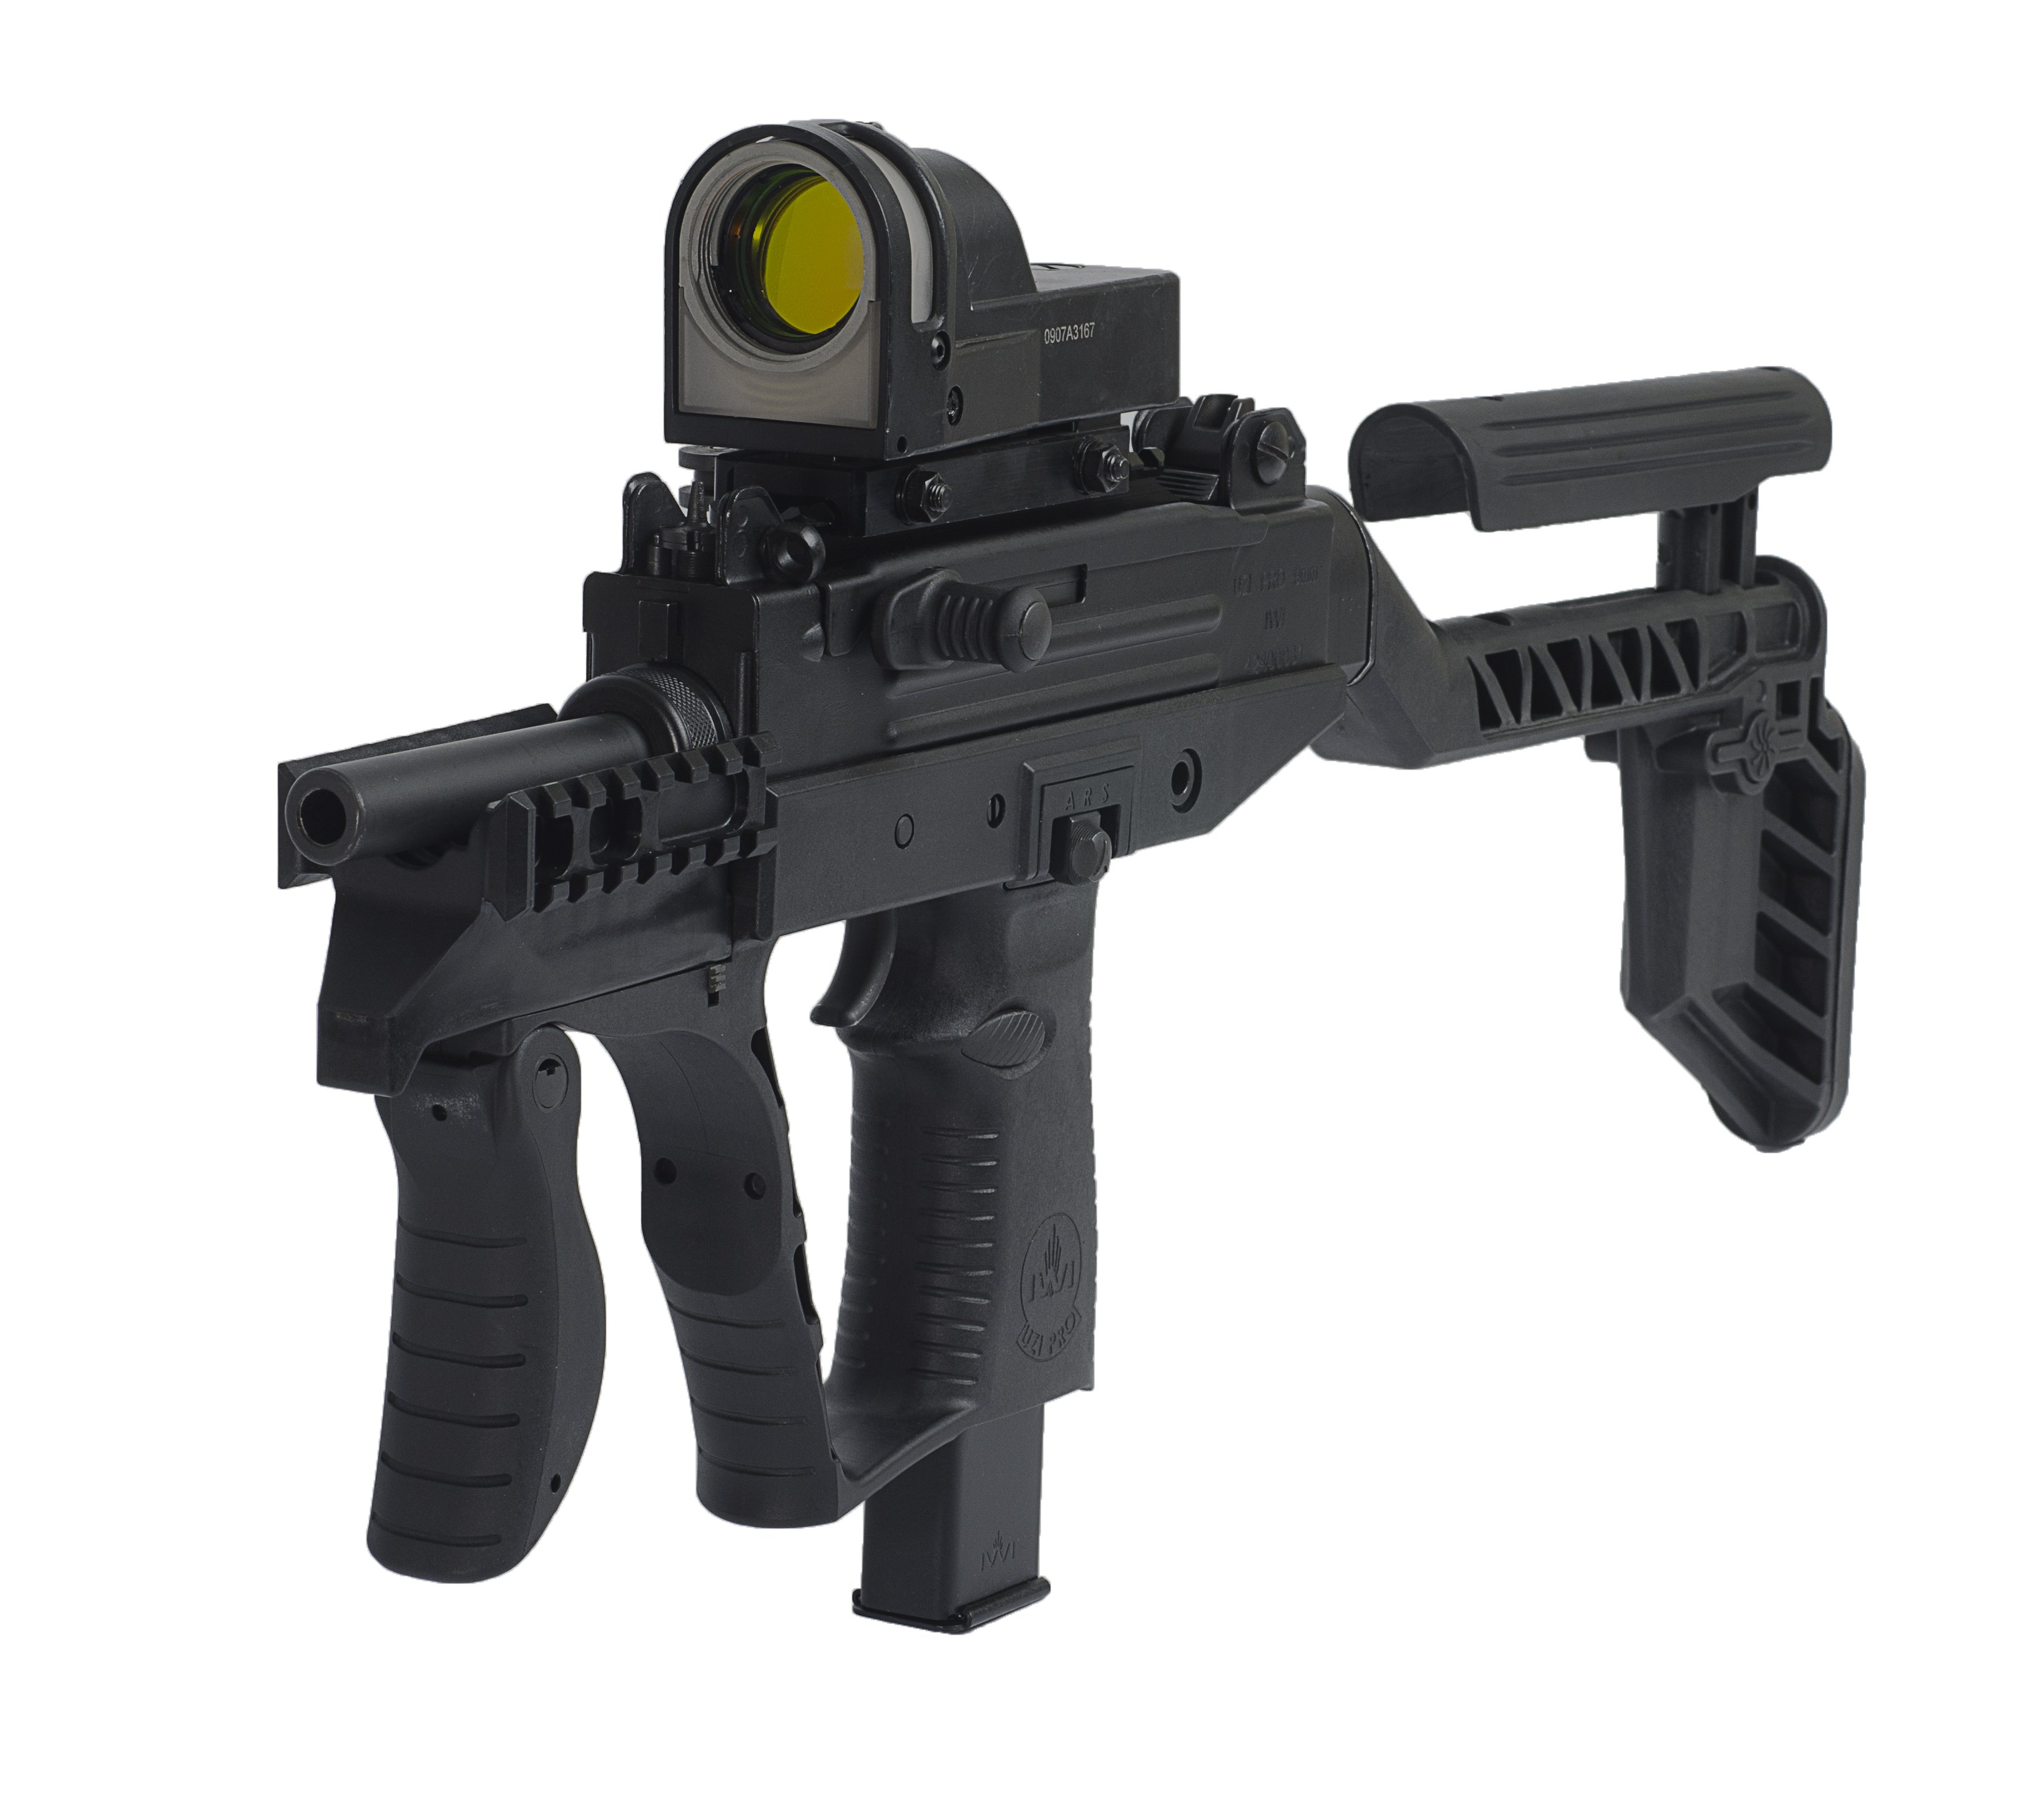 UZI Sub-Machine Pistol